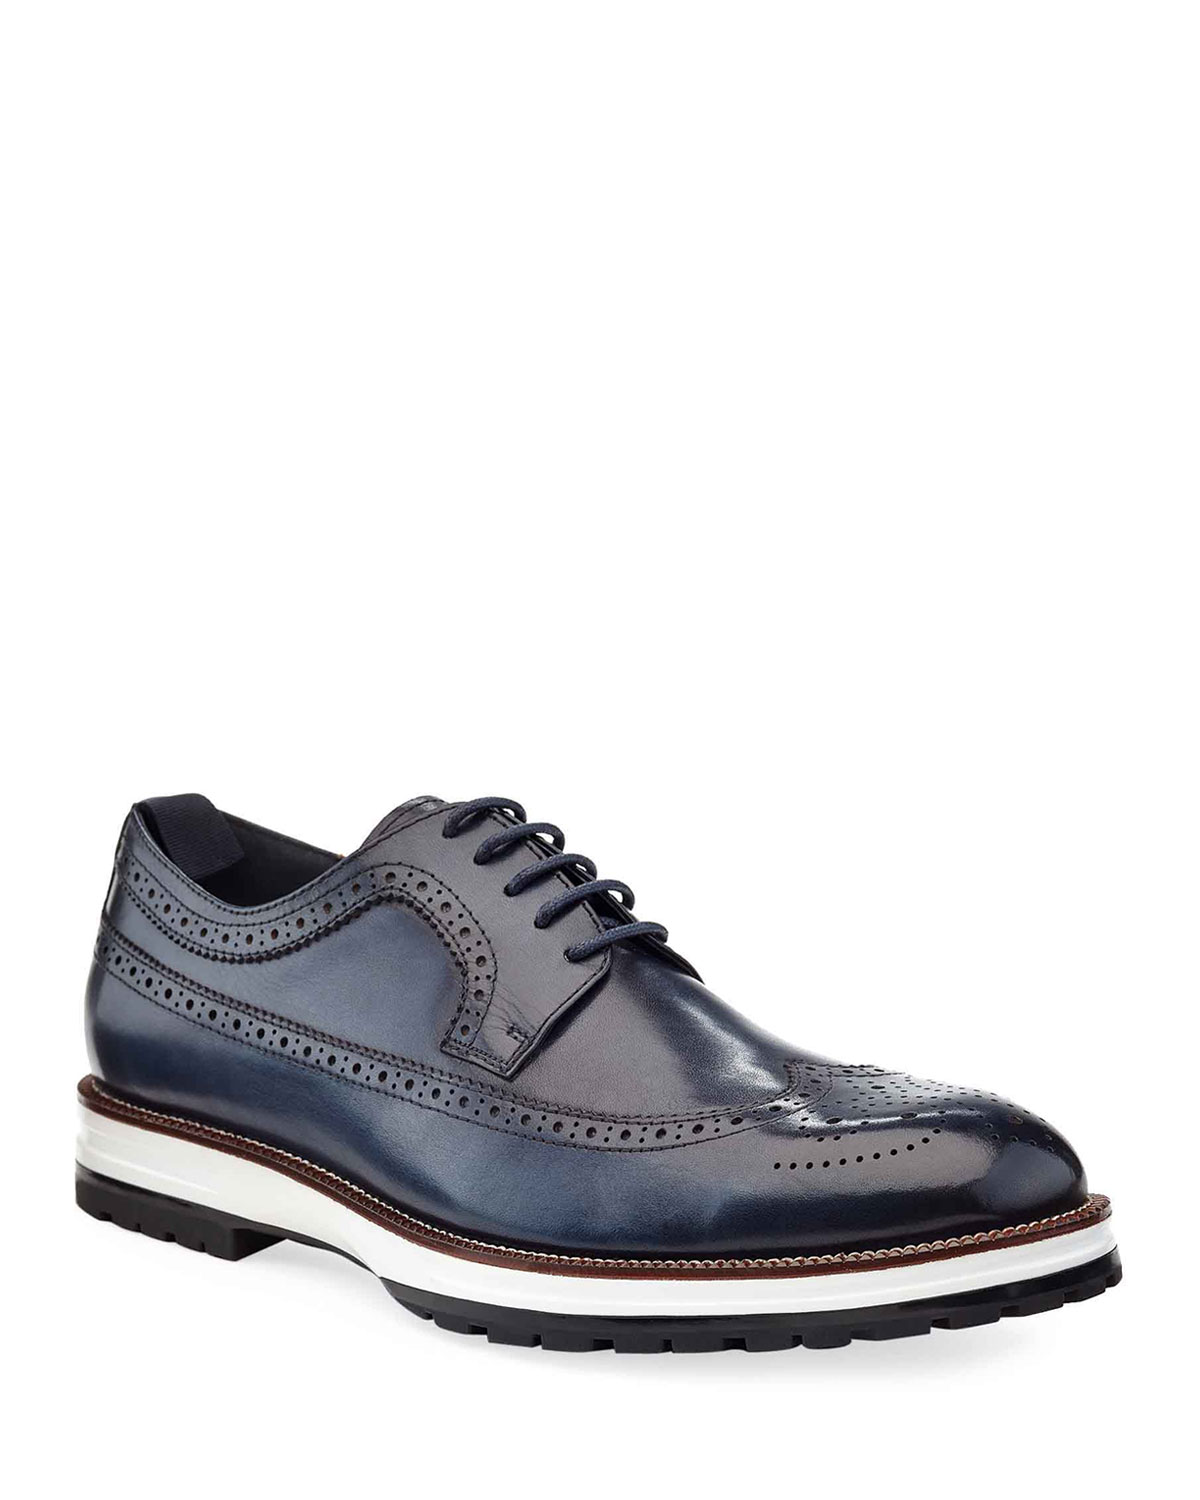 Ike Behar Men's Louis Hybrid Wing-Tip Leather Derby Shoes